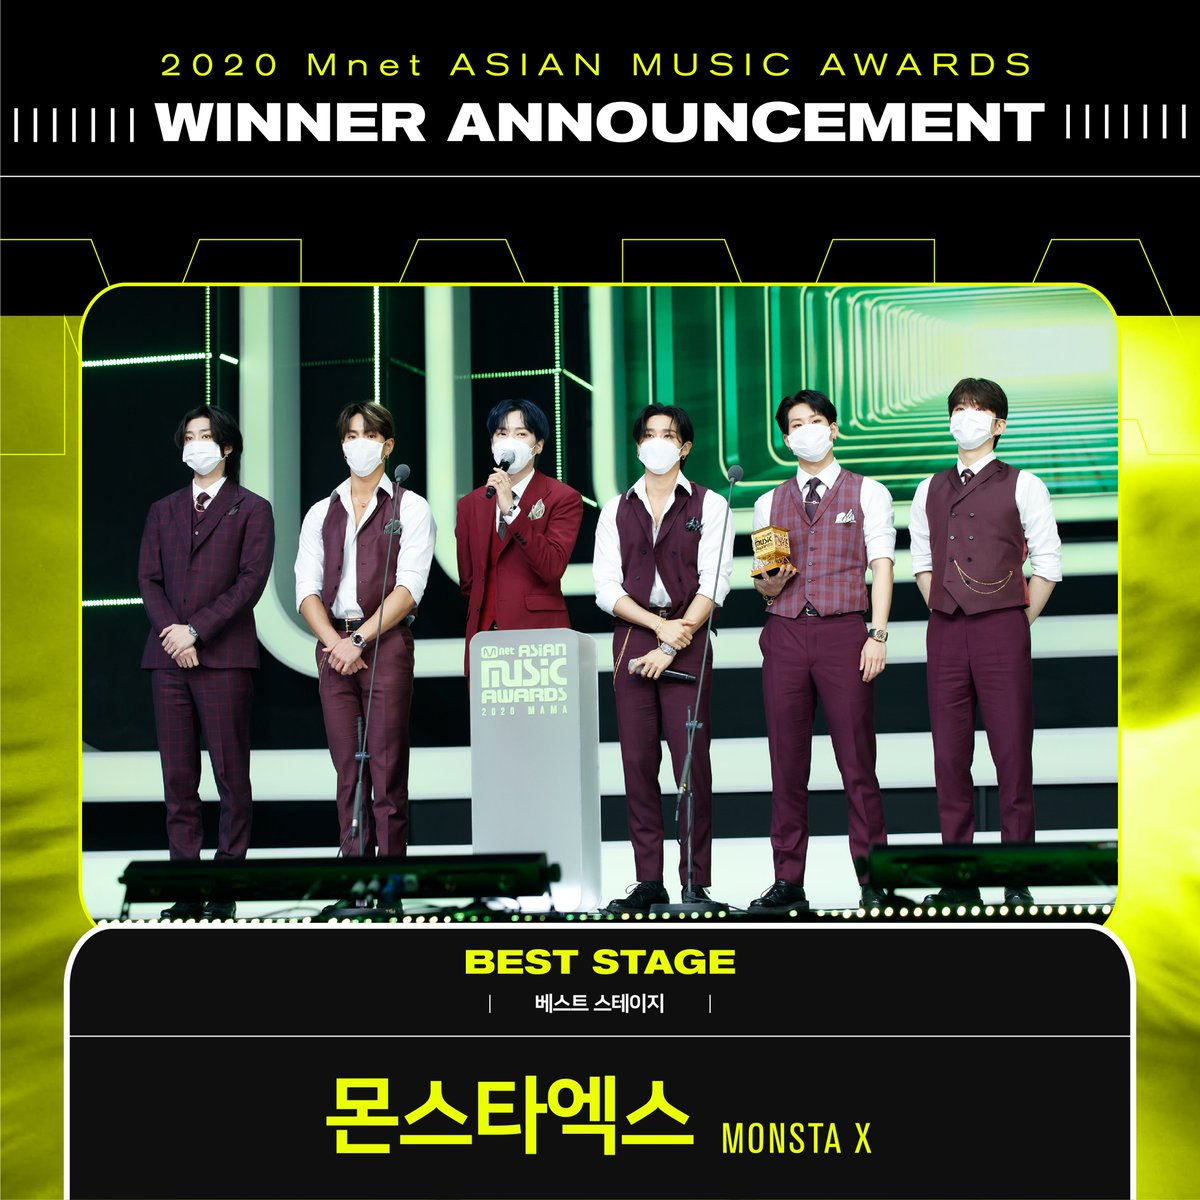 Replying to @MnetMAMA: [#2020MAMA] BEST STAGE #몬스타엑스 #monstax  Congrats to @OfficialMonstaX on winning!🎆  #MAMA #Mnet